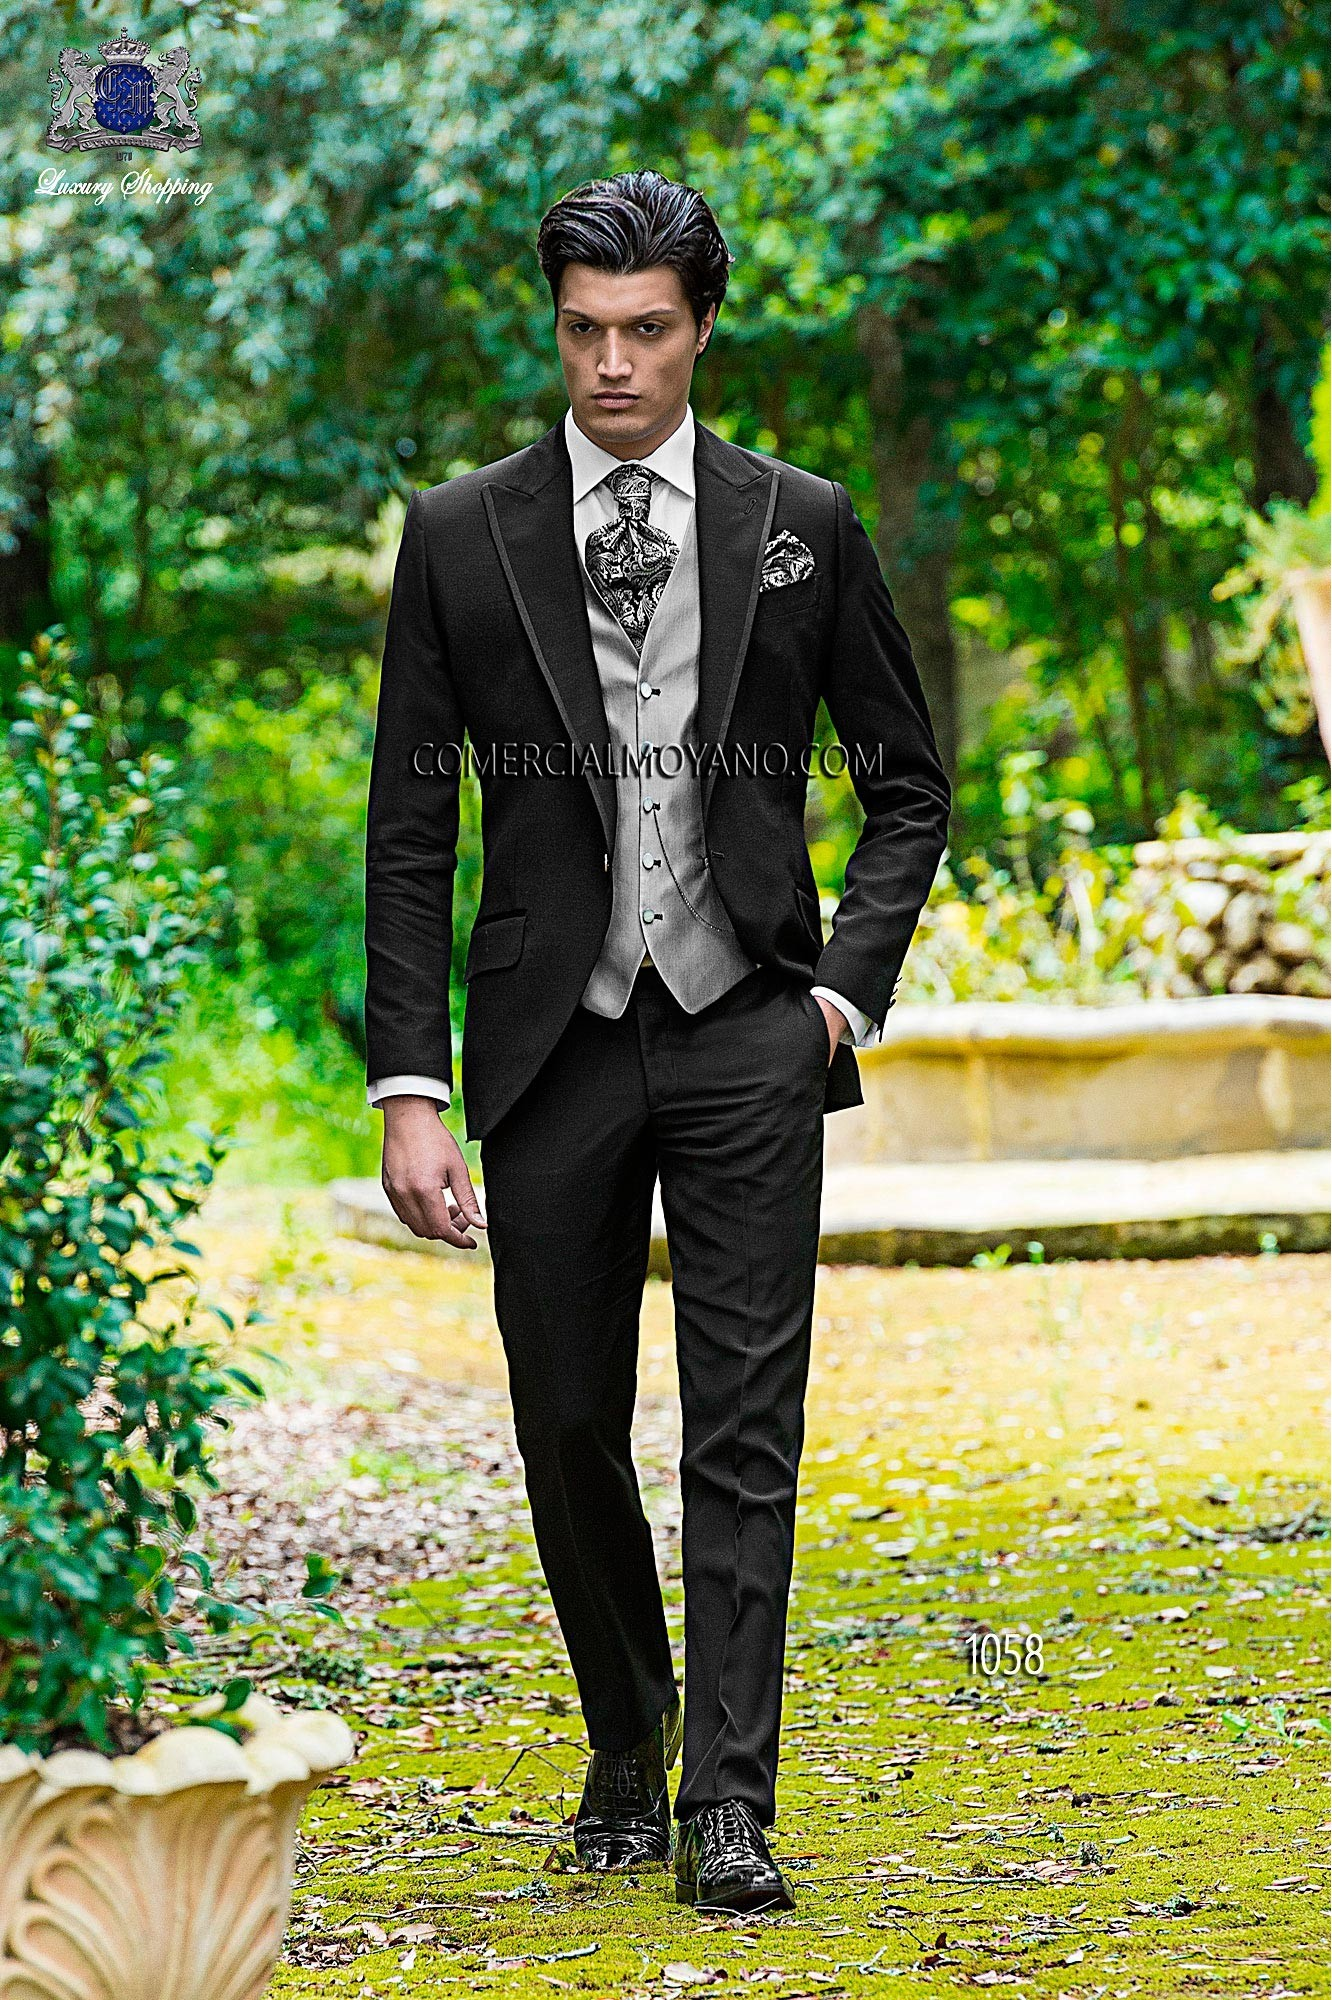 Fashion black men wedding suit model 1058 Ottavio Nuccio Gala